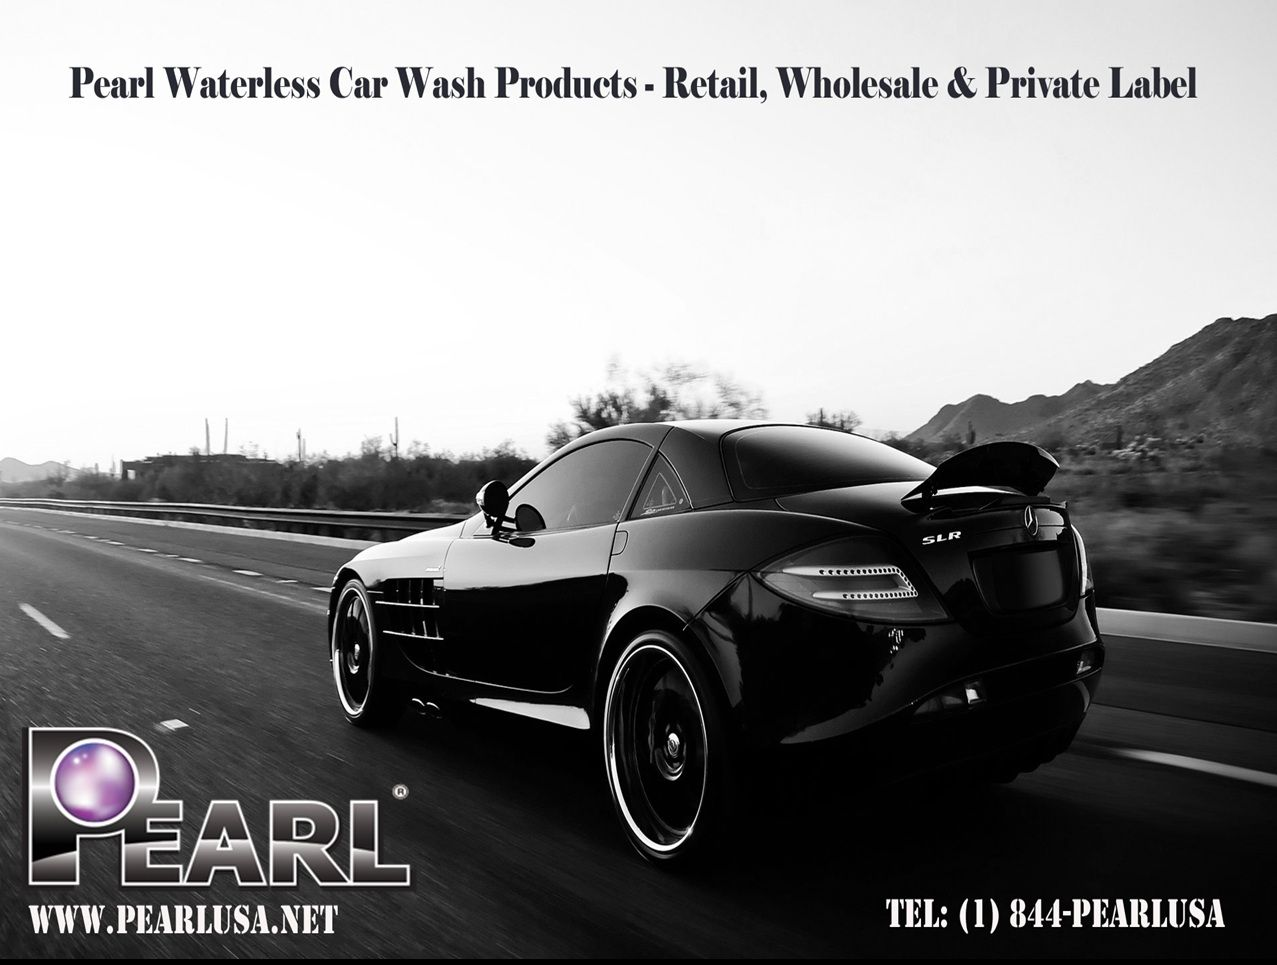 Pearl Waterless Car Wash ProductsClass Wax and Polishes